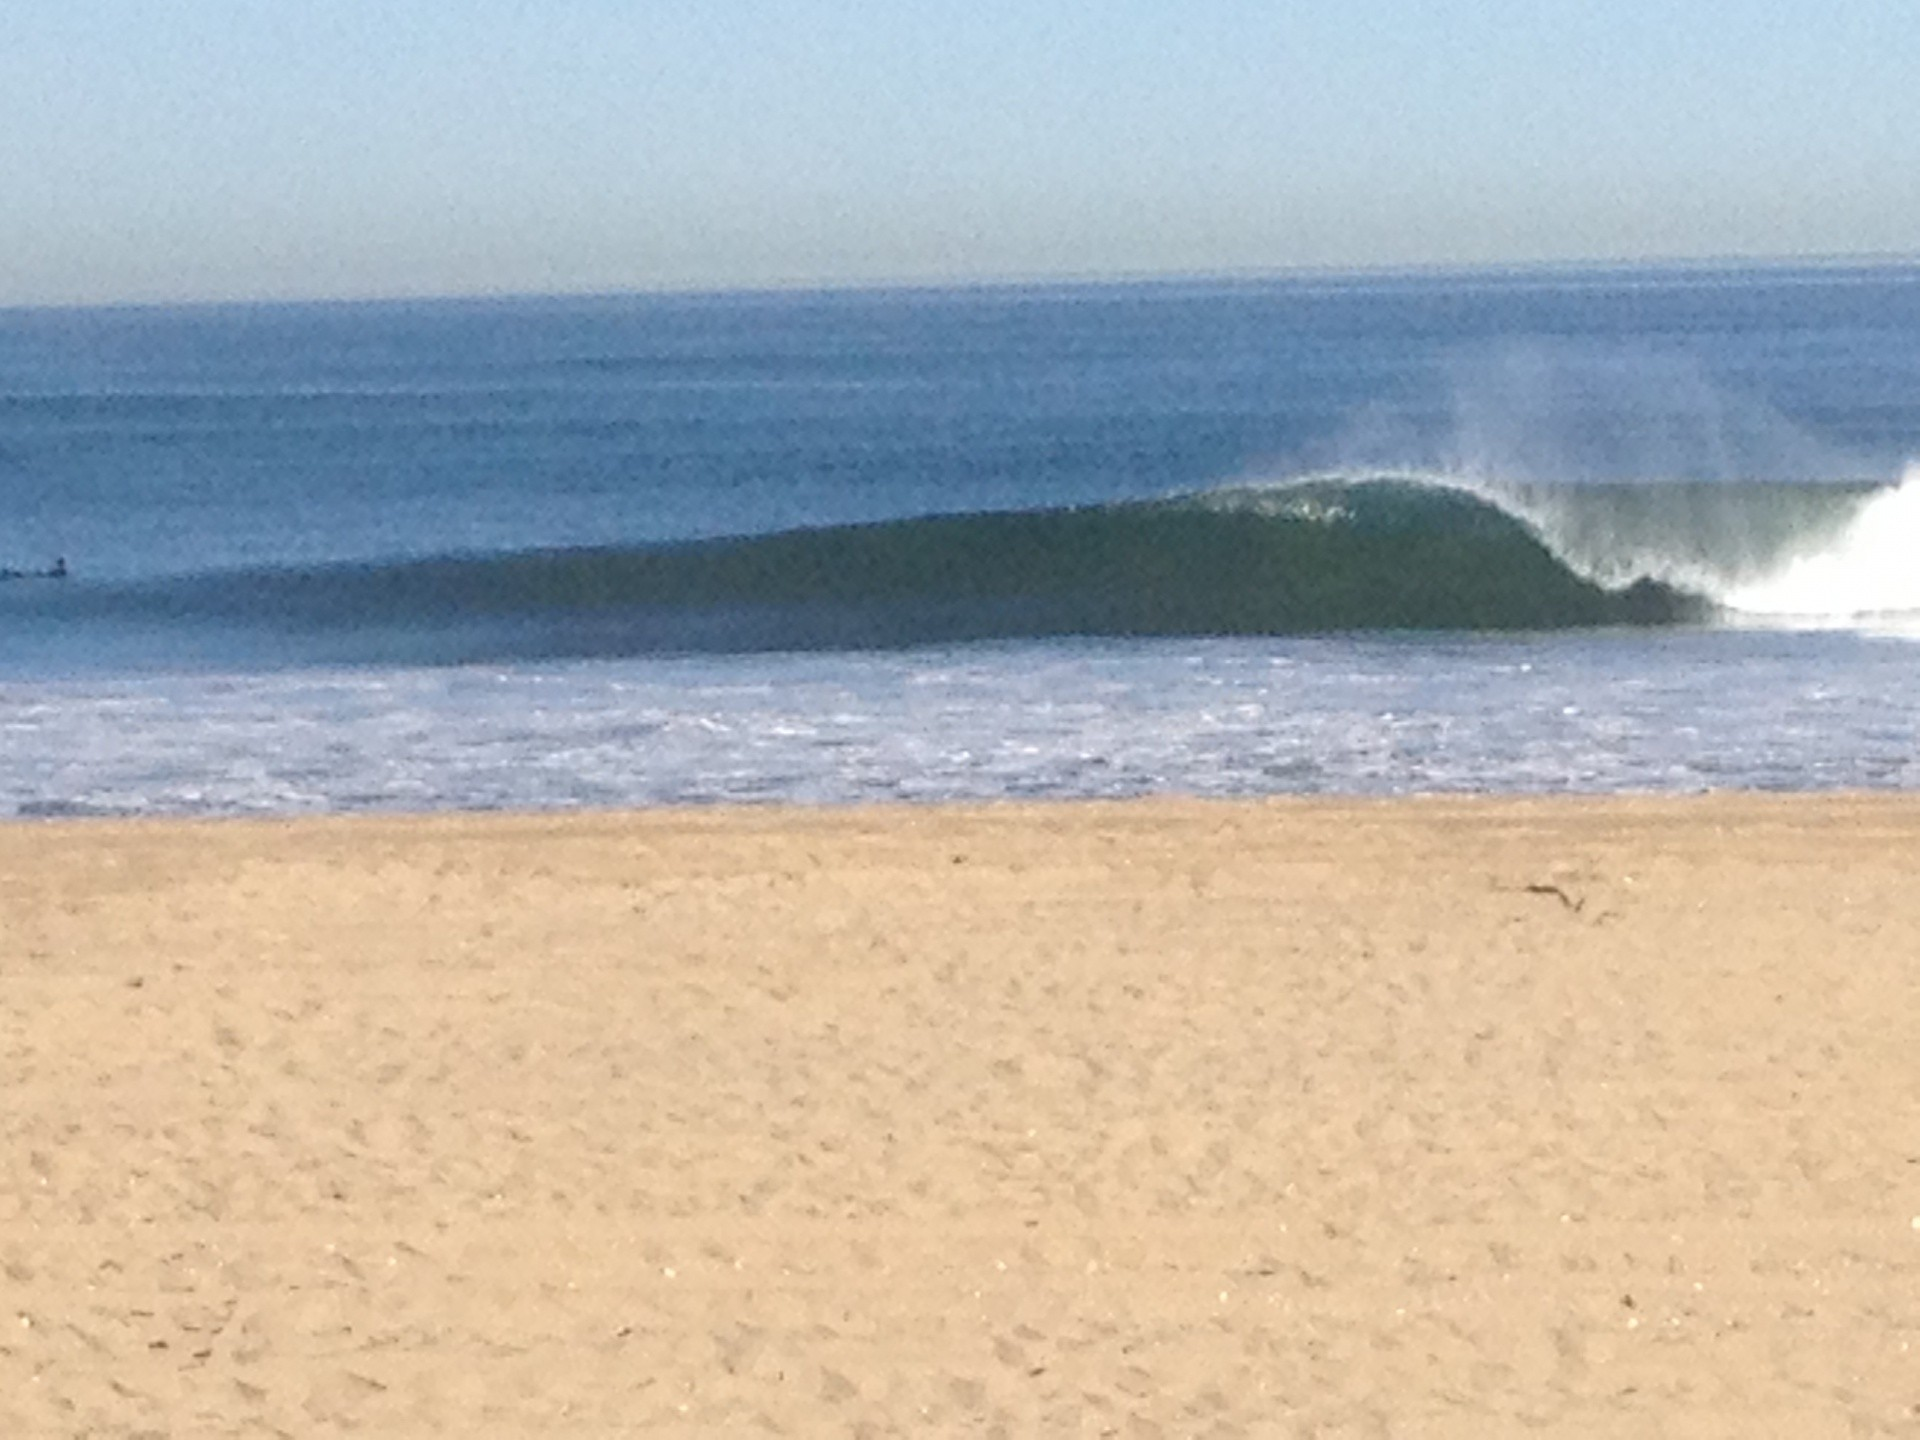 gratliff1's photo of Imperial Beach